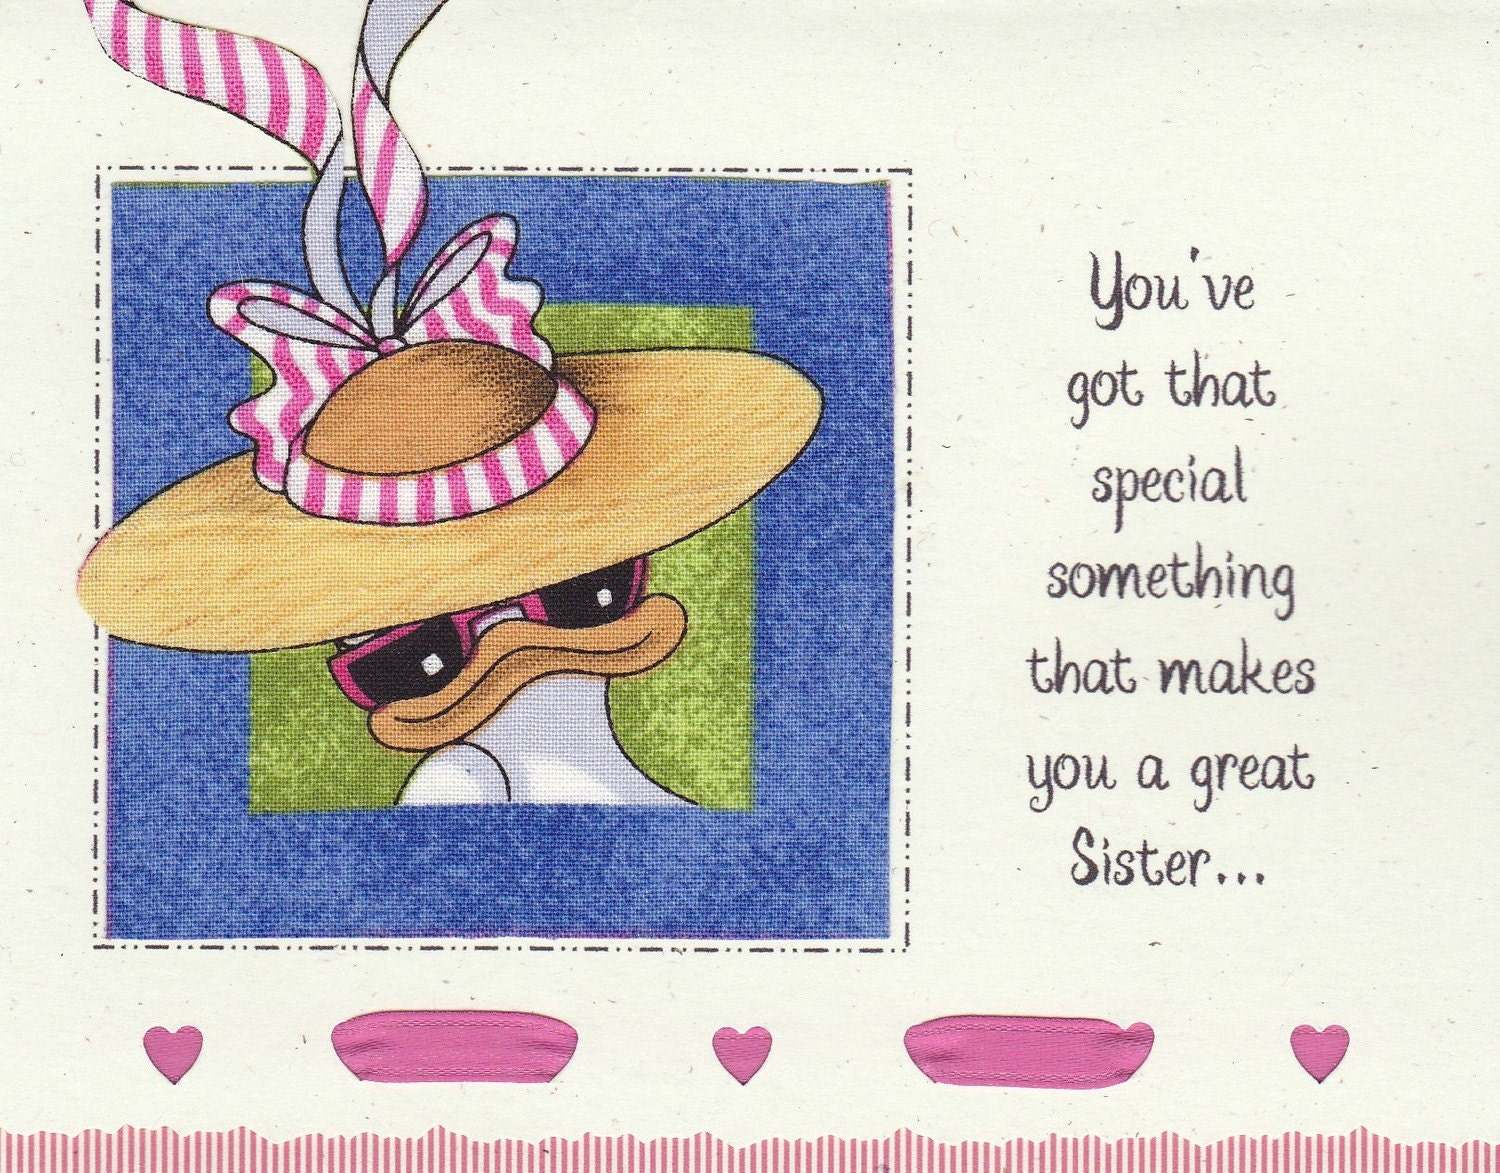 Funny Sister Ecards – Funny Sister Birthday Cards